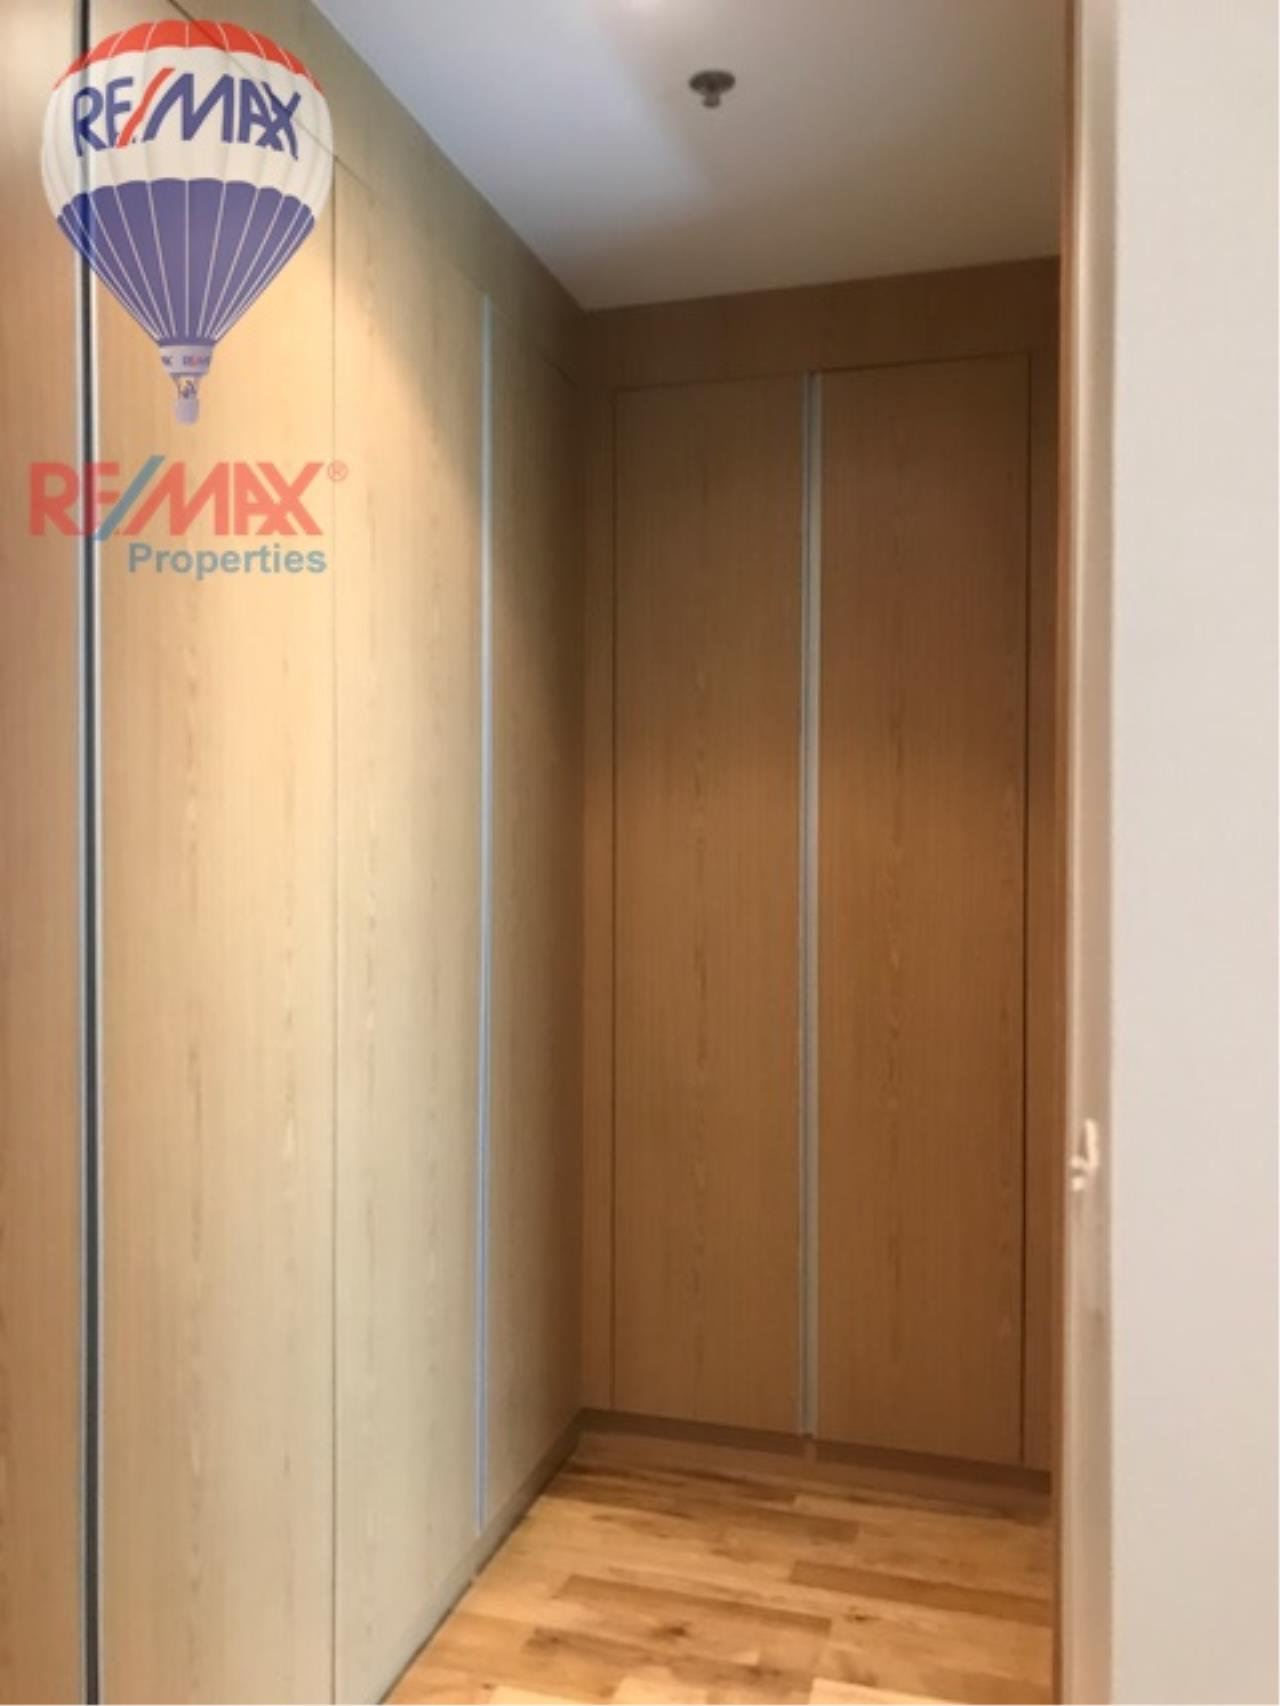 RE/MAX Properties Agency's SALE 2+1 Bedroom  128 Sq.m at Millennium Residence 11